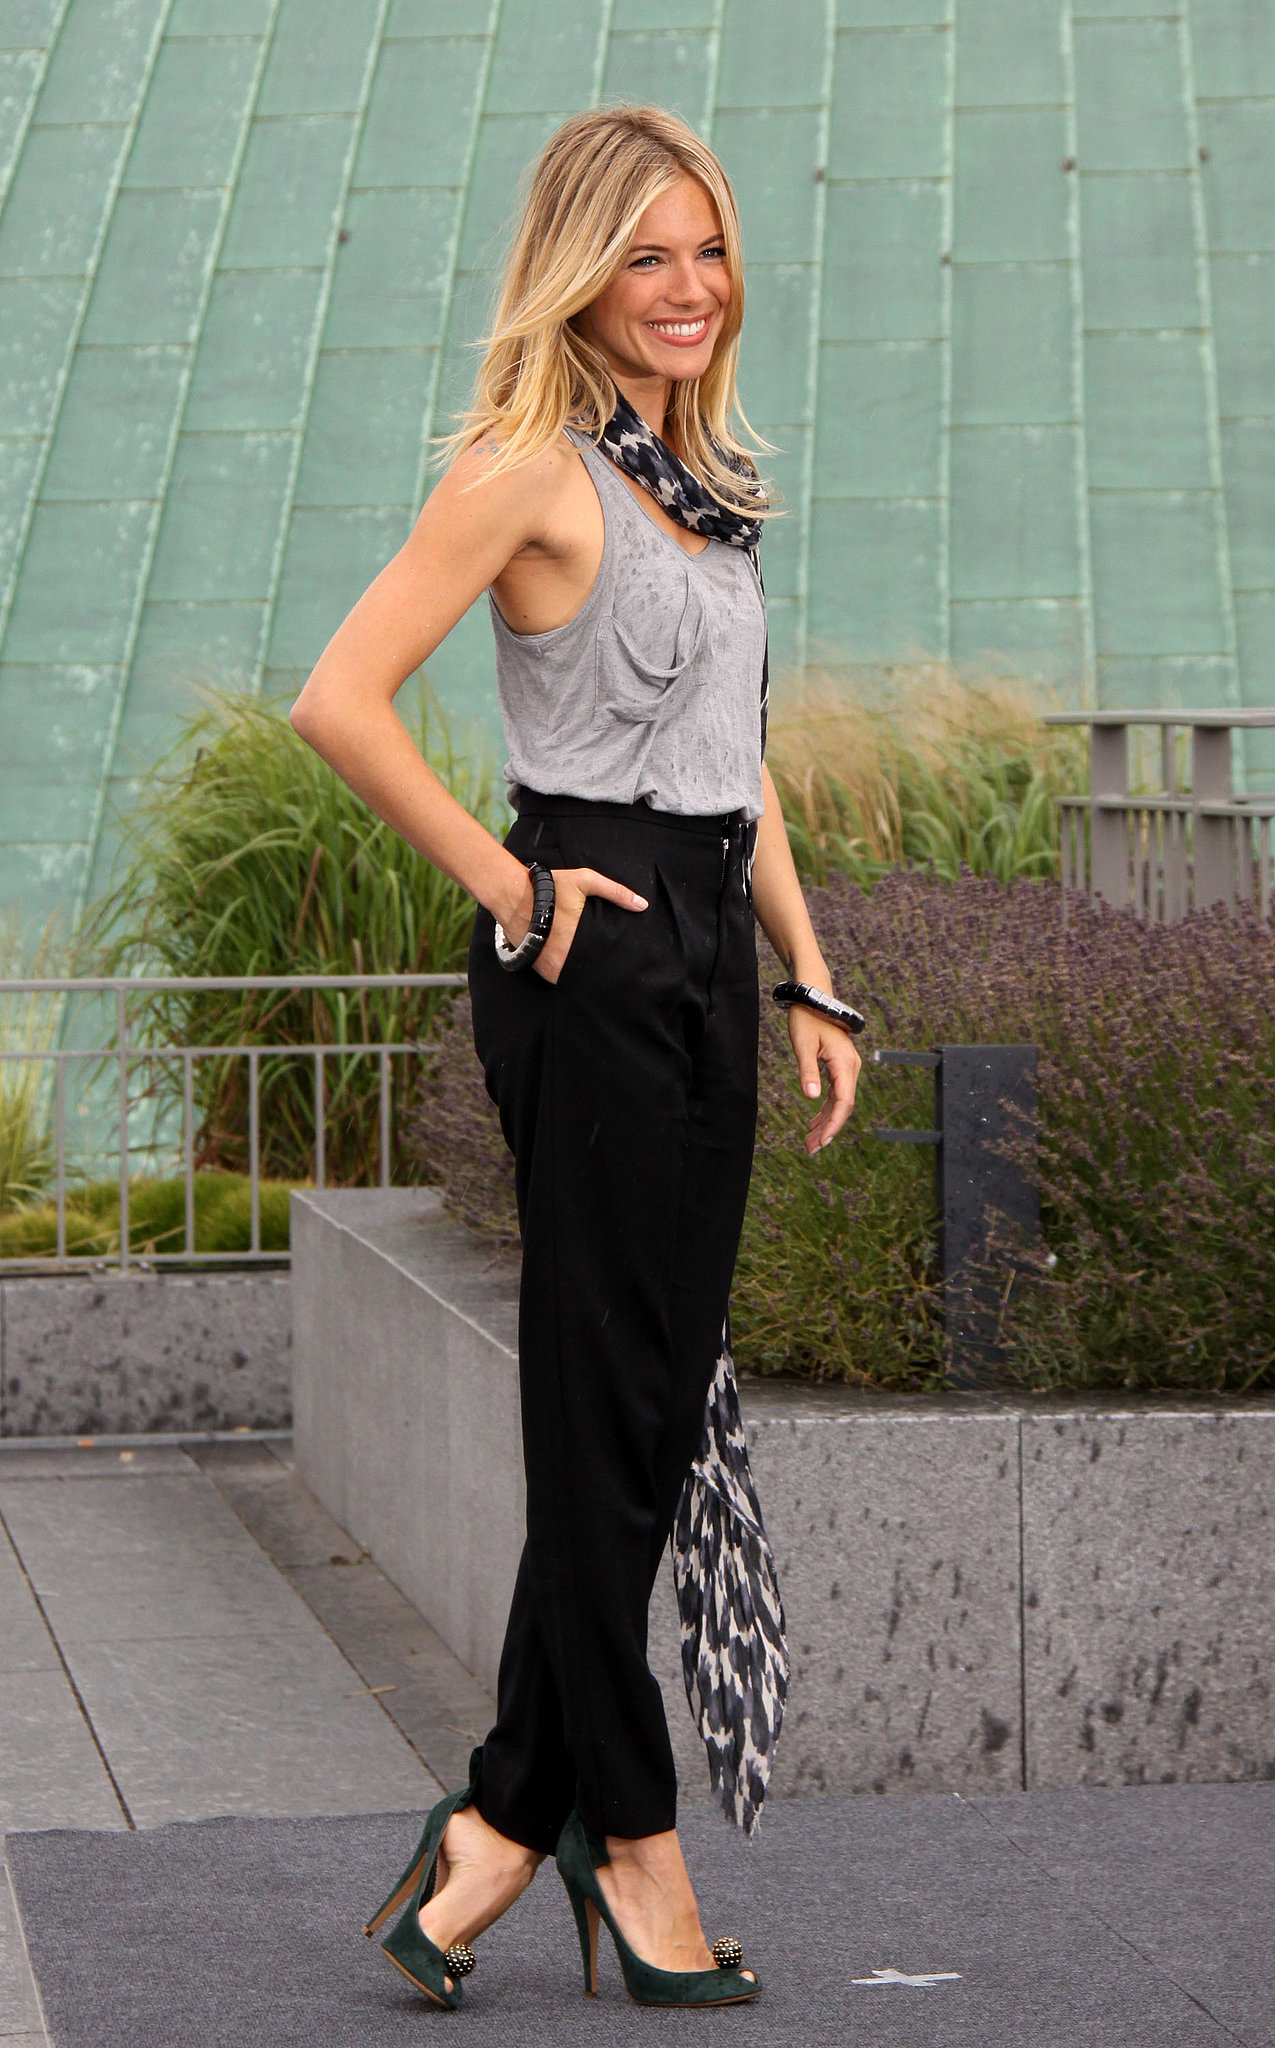 Sienna looked casual but put-together at the G.I. Joe: The Rise of Cobra photocall in July 2009.